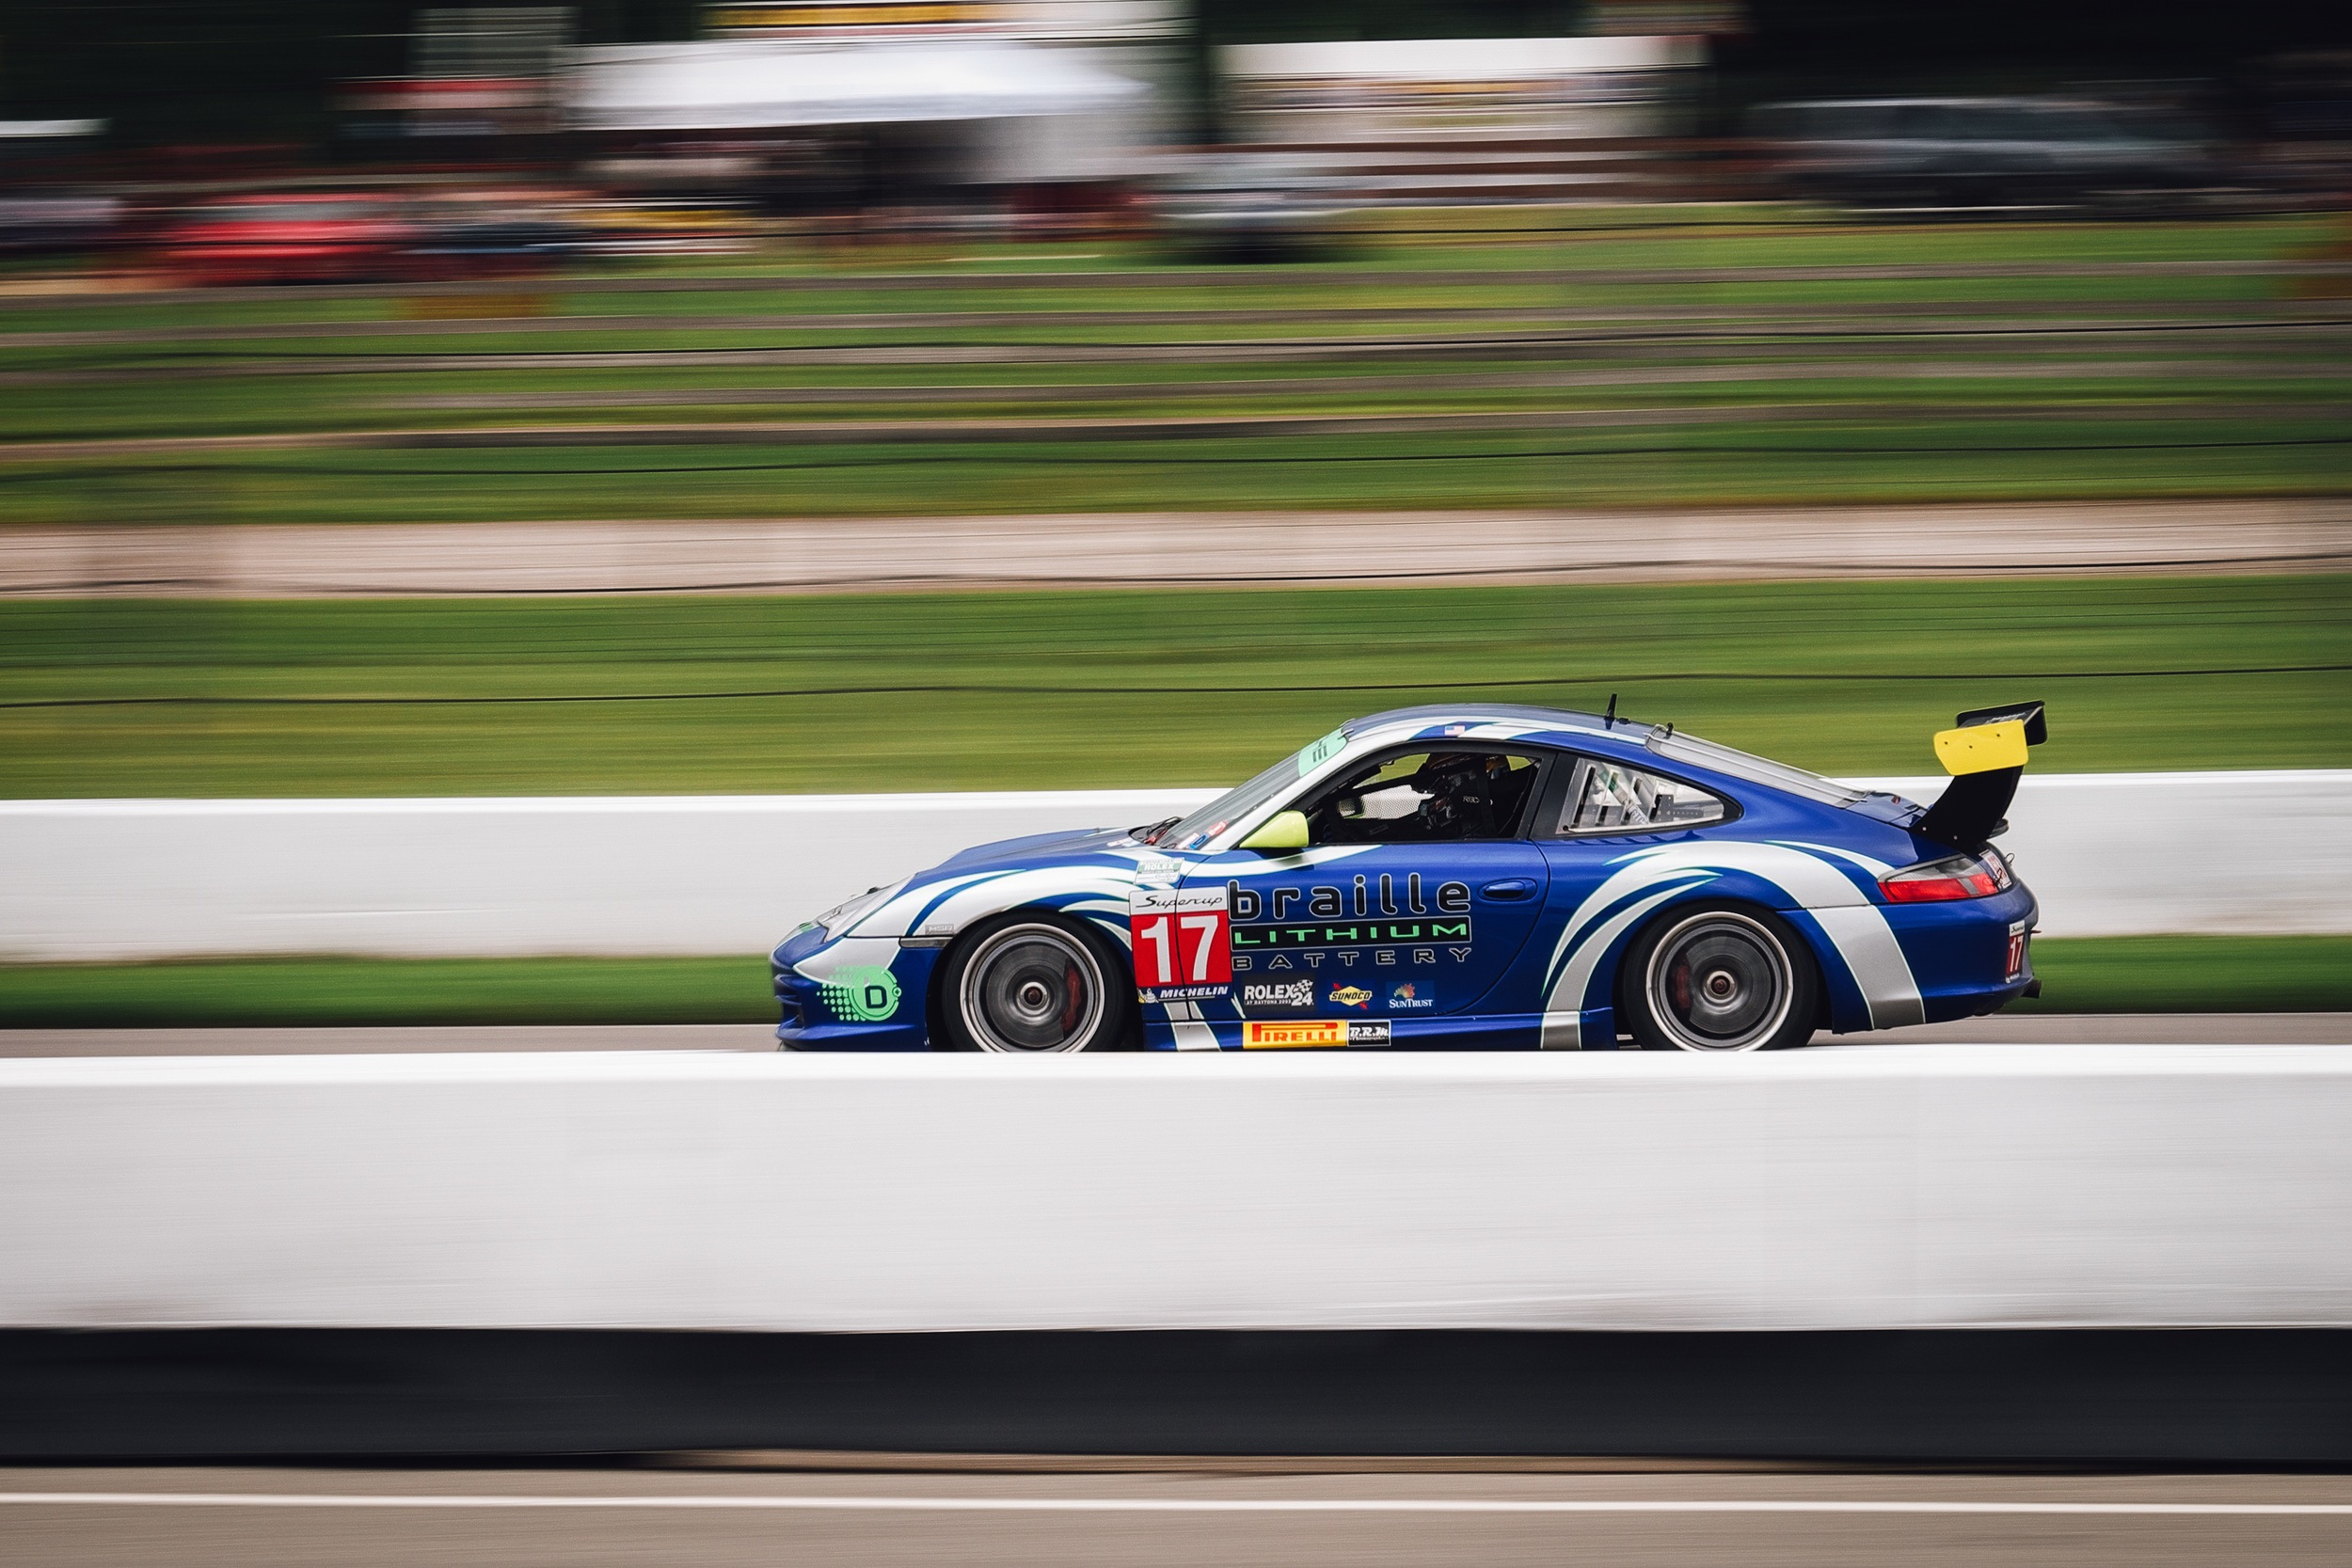 Screaming down the front straight into turn 1.  Gear & Specs: Fuji X-T1 - Fujinon XF 50-140mm F2.8 R LM OIS WR - 1/60 f14ISO 200